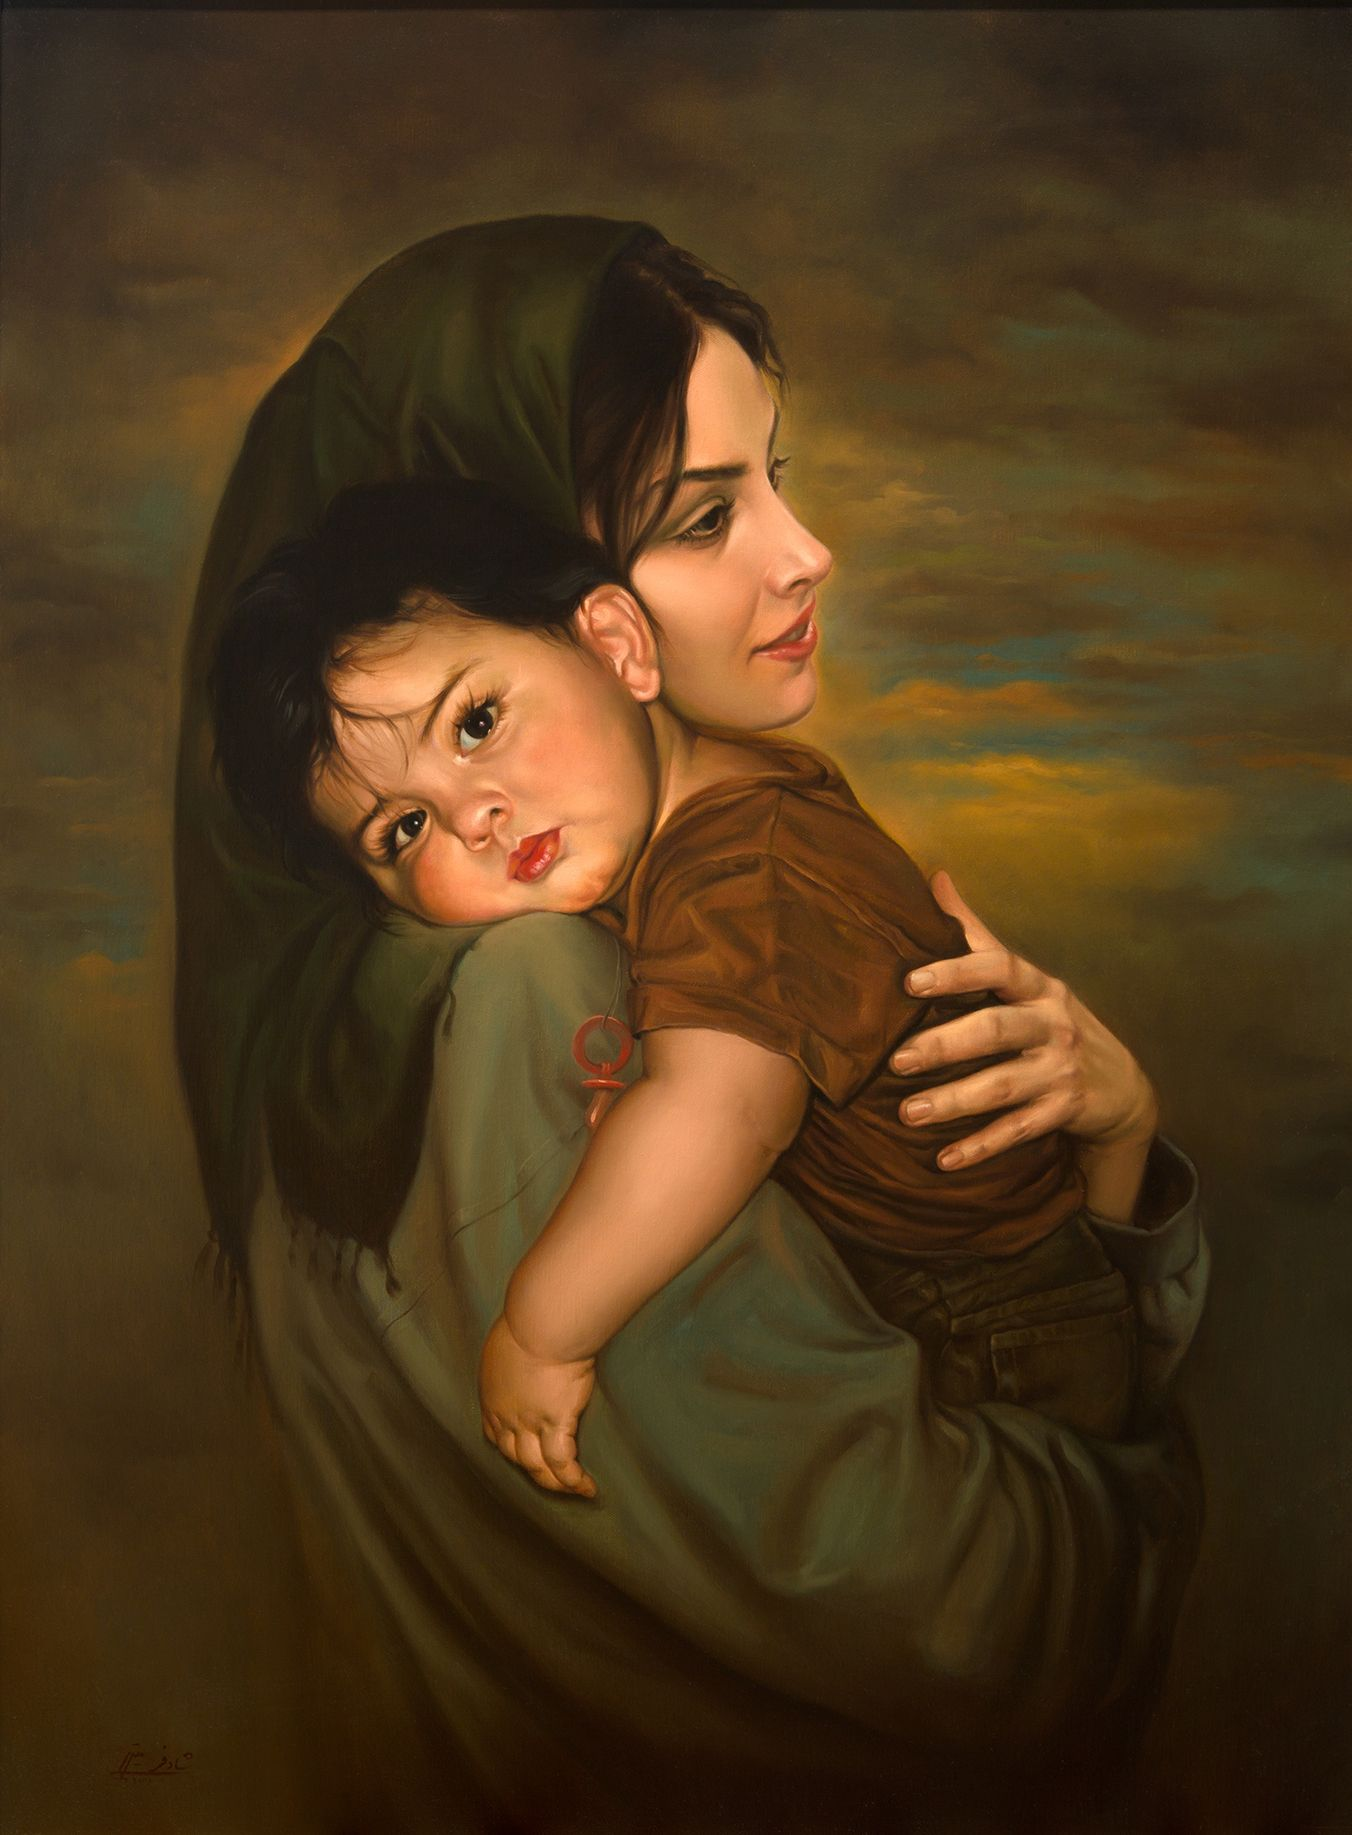 Mother and child photo